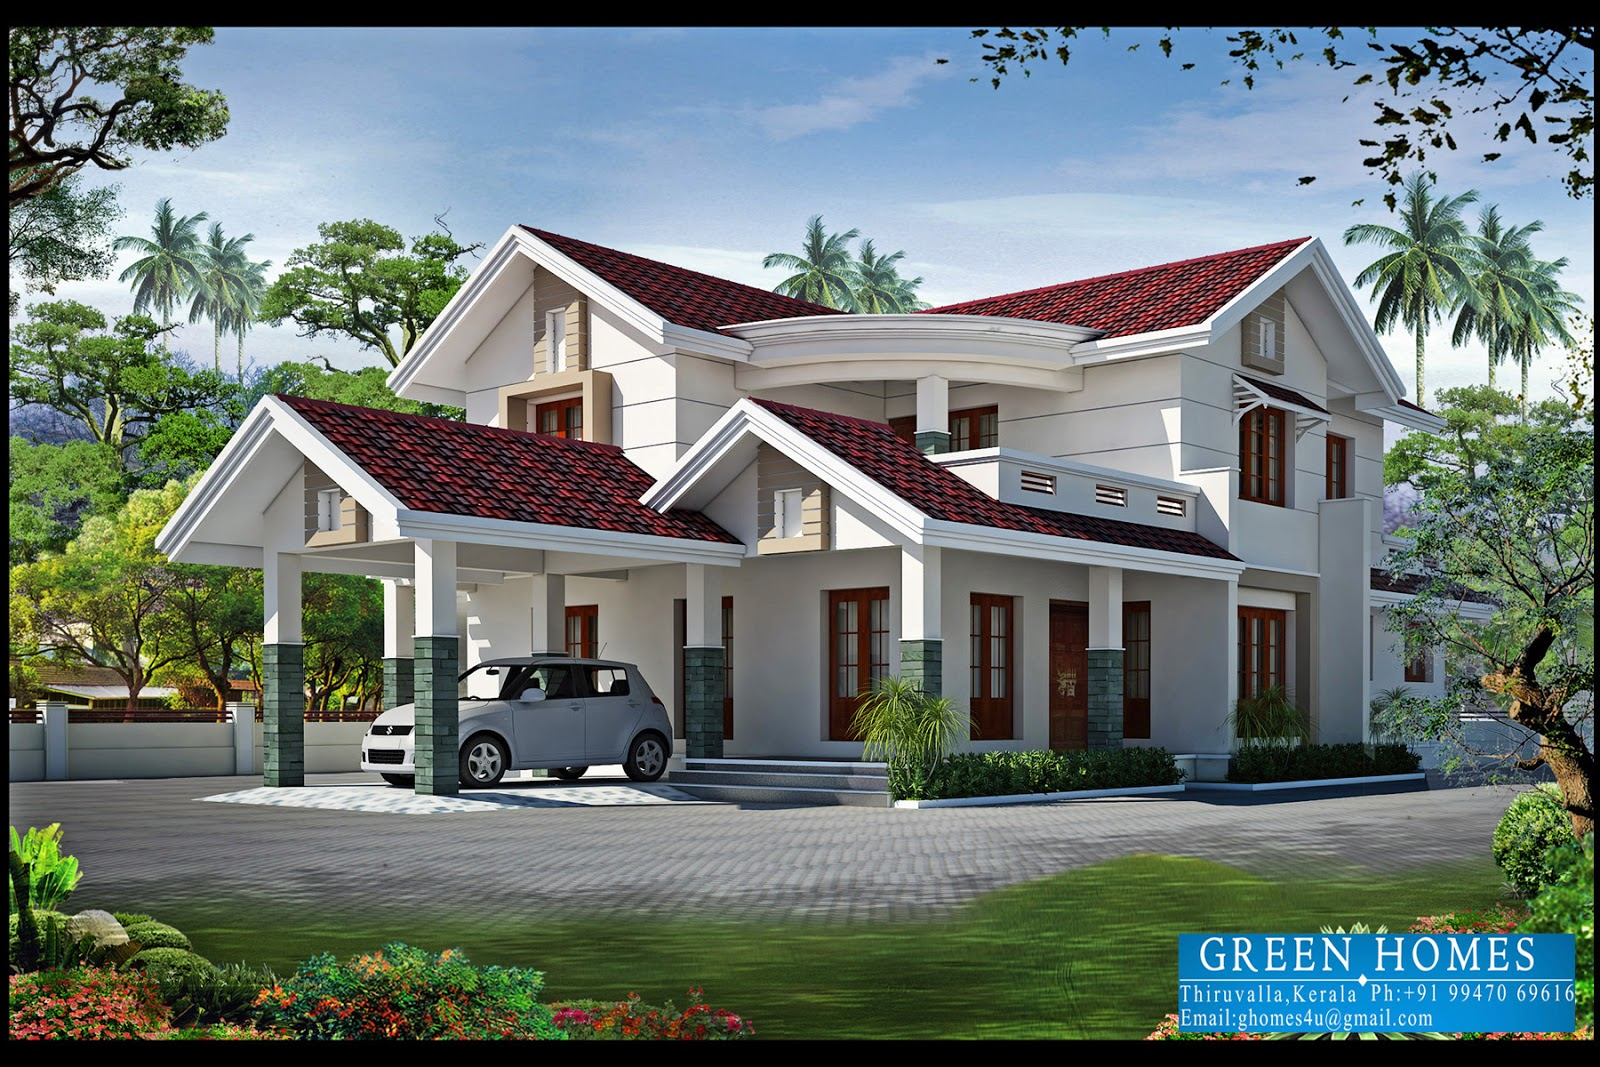 Green homes 4bhk kerala home design 2550 for Kerala new house plans